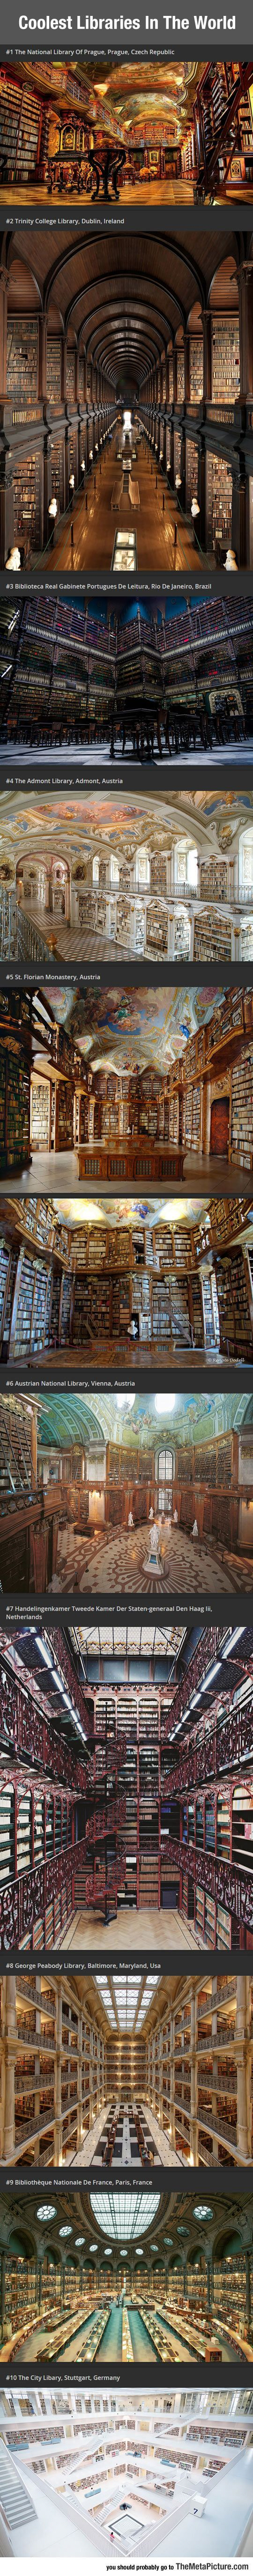 Best Libraries In The World